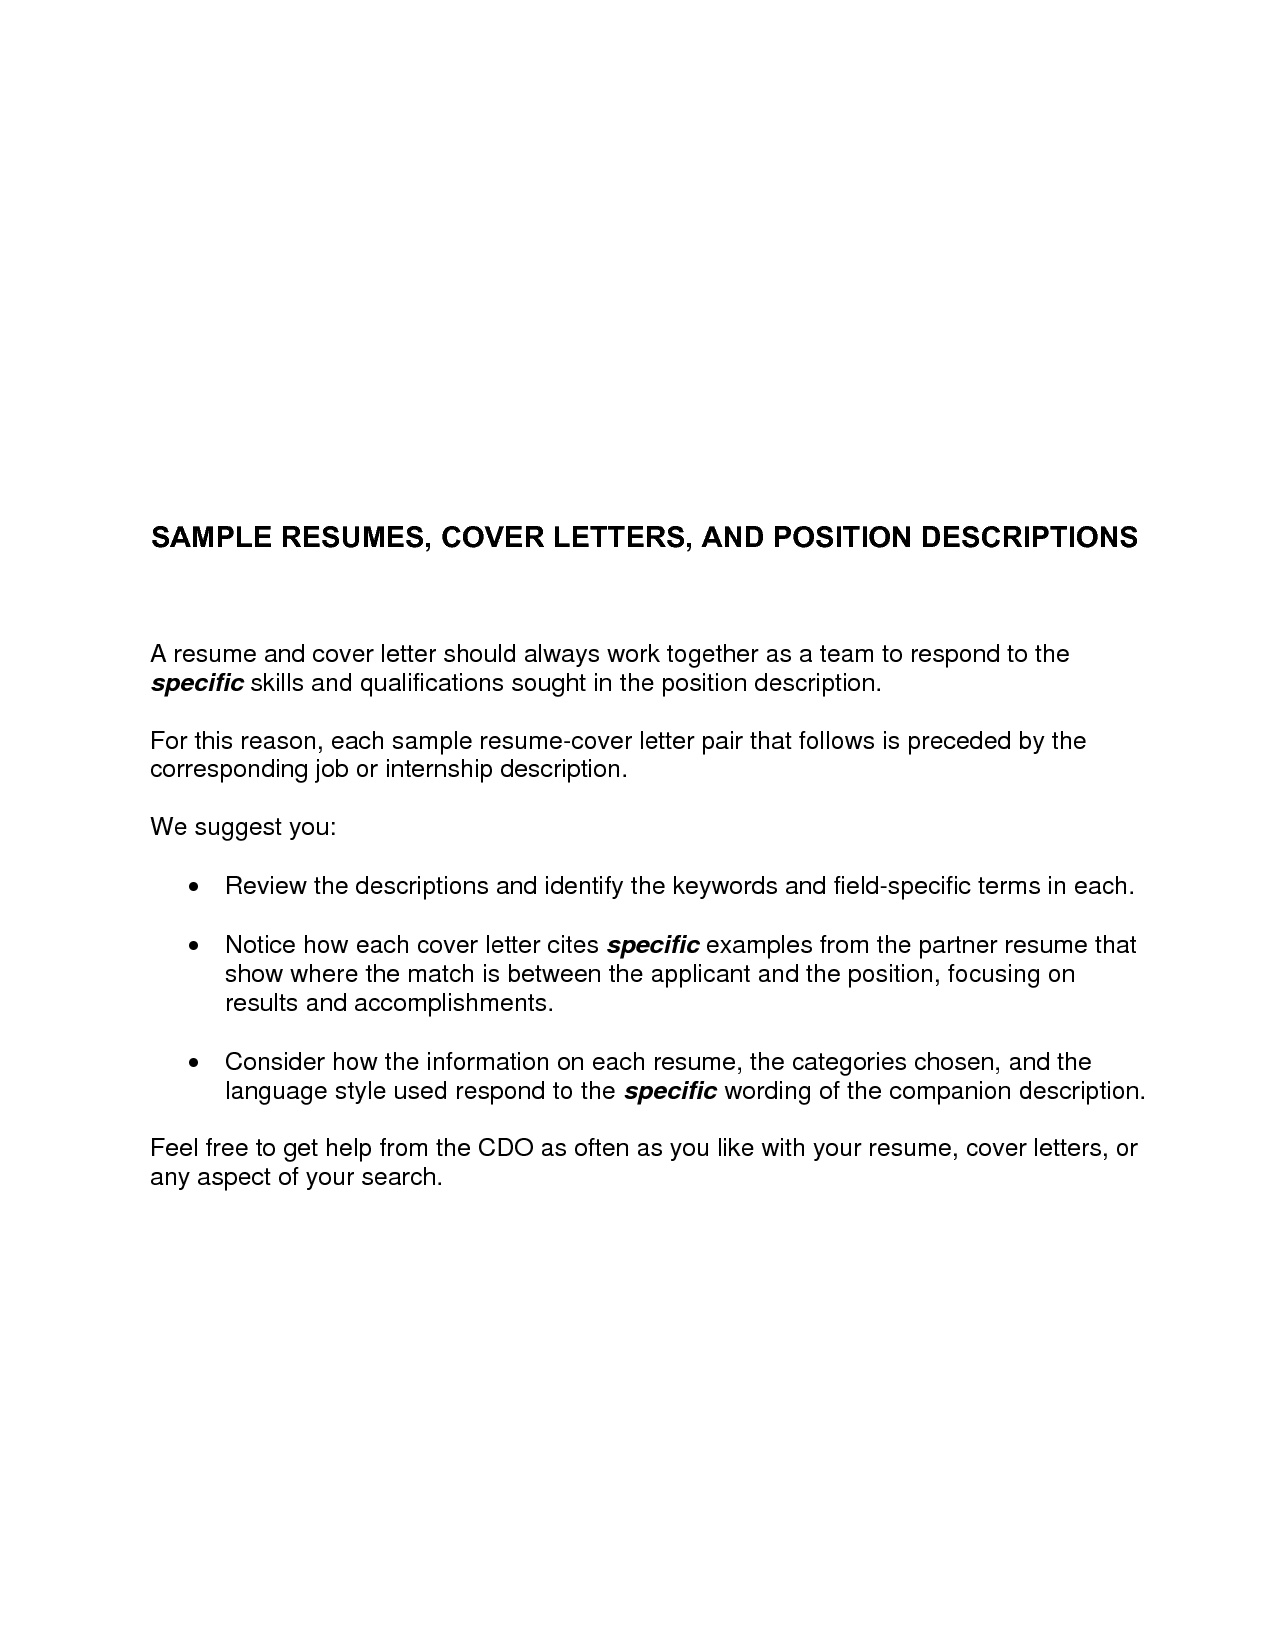 good example of a resume cover letter letter samples cover letters for resumes best templatesimple cover letter application letter sample